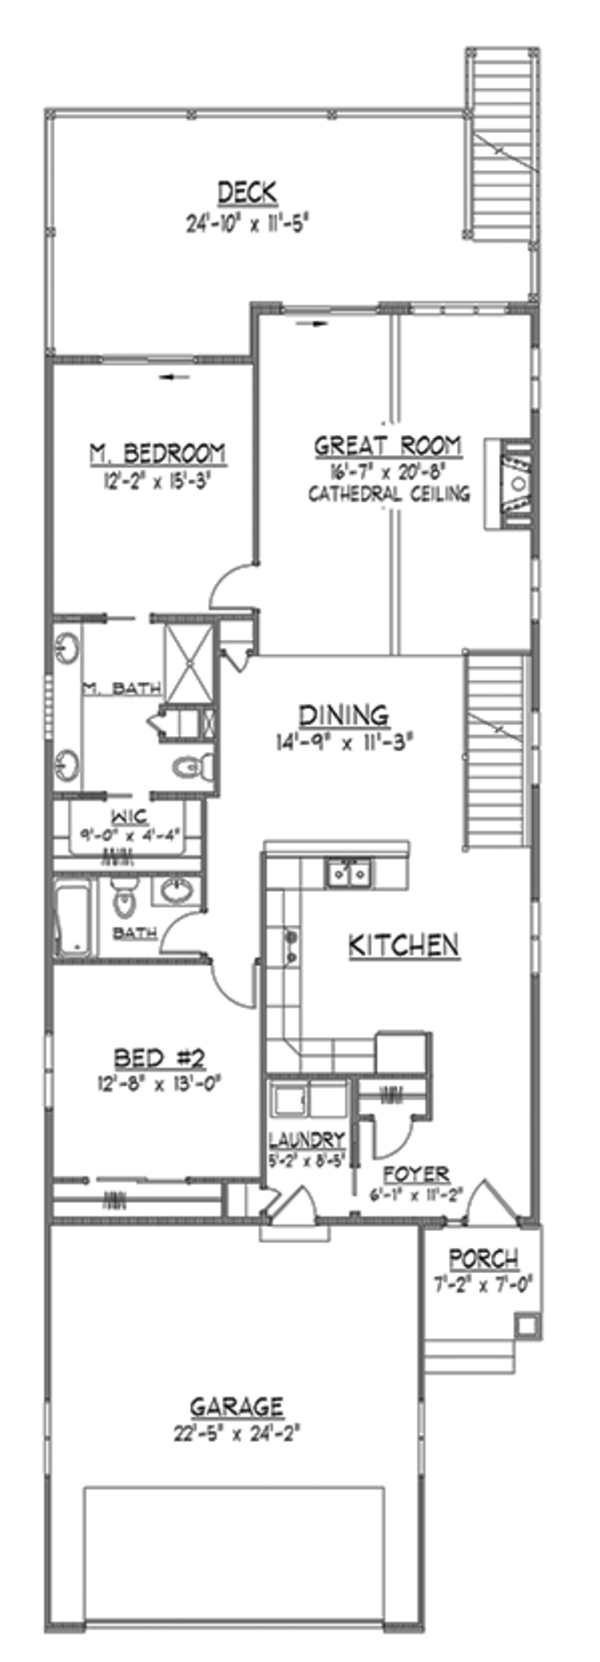 Dream House Plan - Craftsman Floor Plan - Main Floor Plan #1064-7